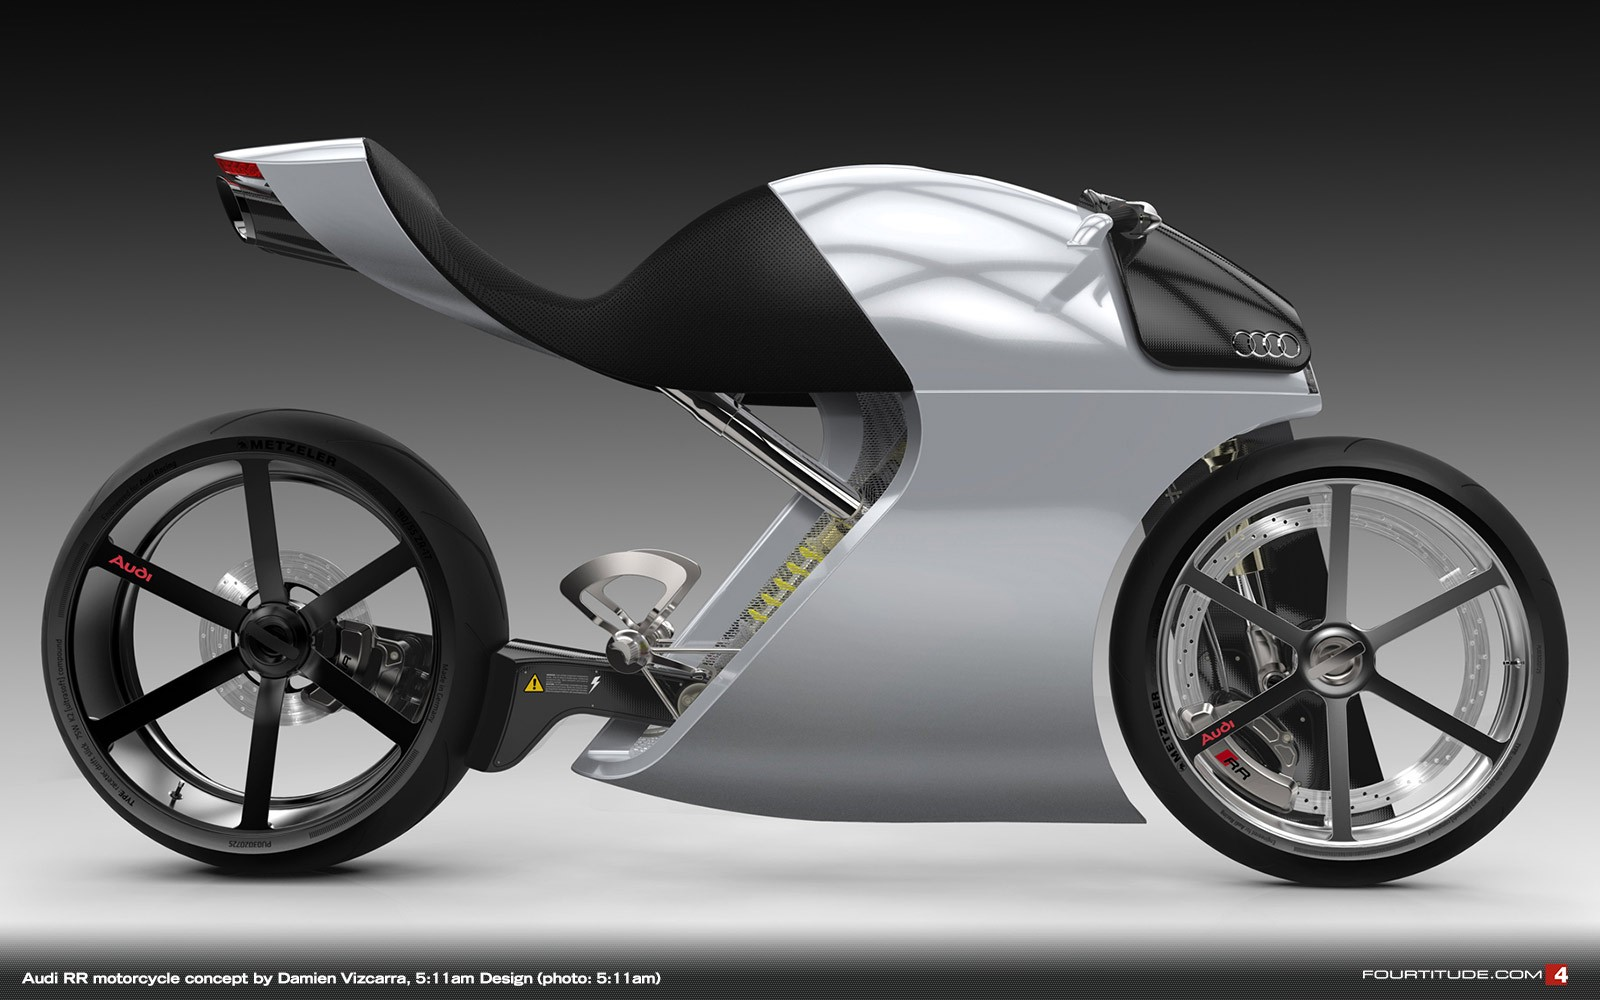 Audi Rr Concept Bike Is A Glimpse Into The Future Autoevolution